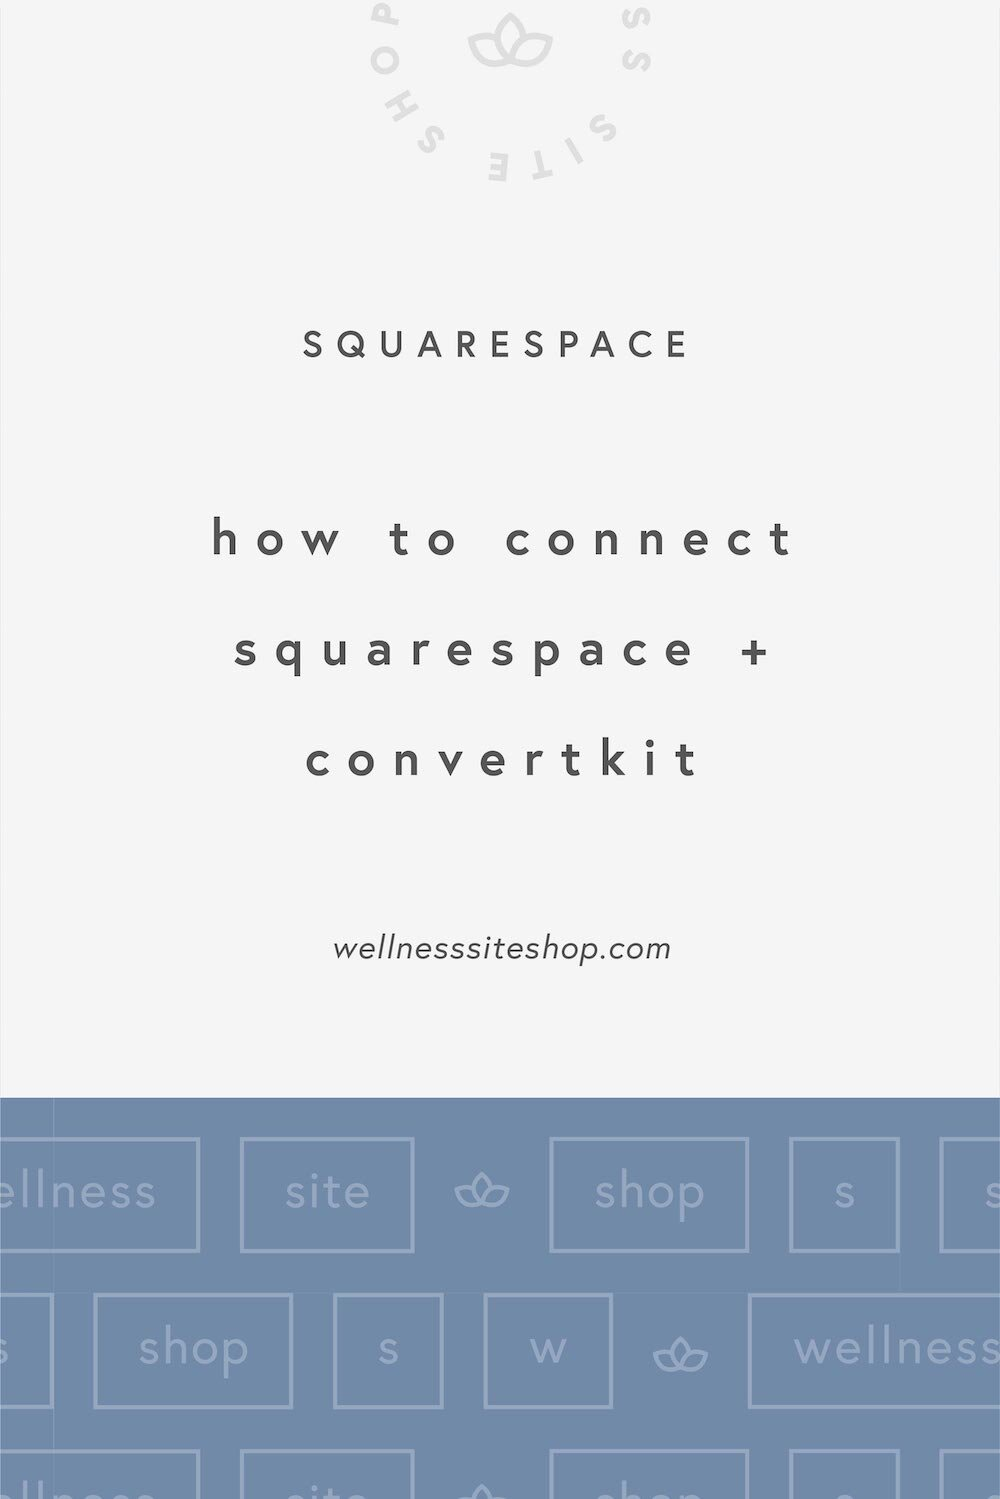 How to connect squarespace and convertkit**.jpg